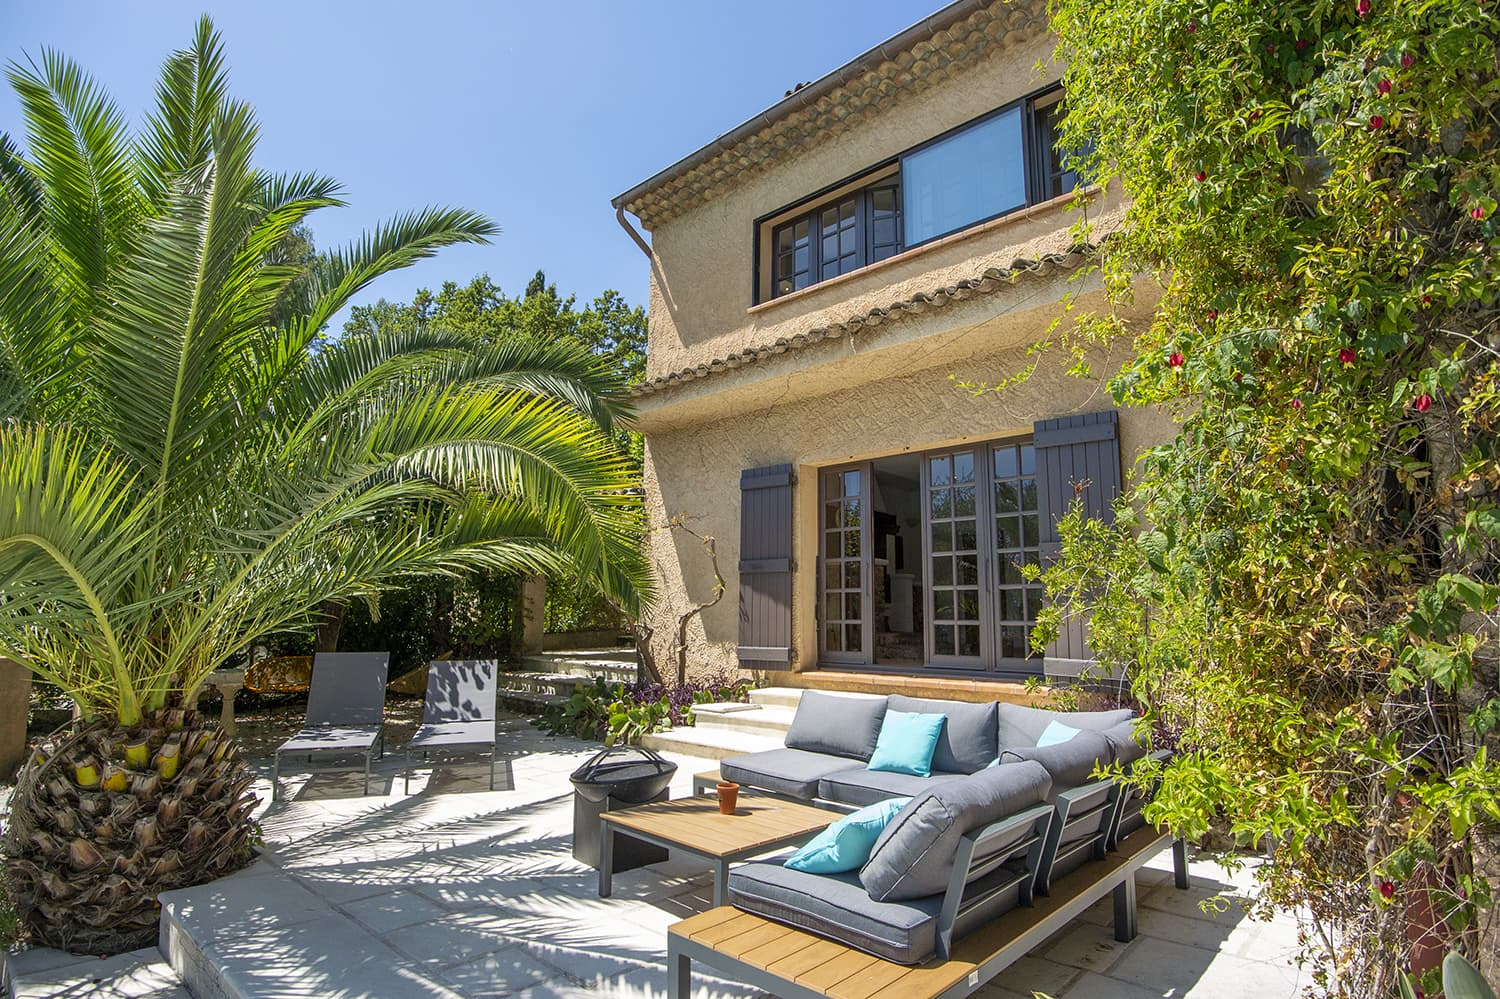 Holiday home with private pool in Mougins, Provence-Alpes-Côte d'Azur